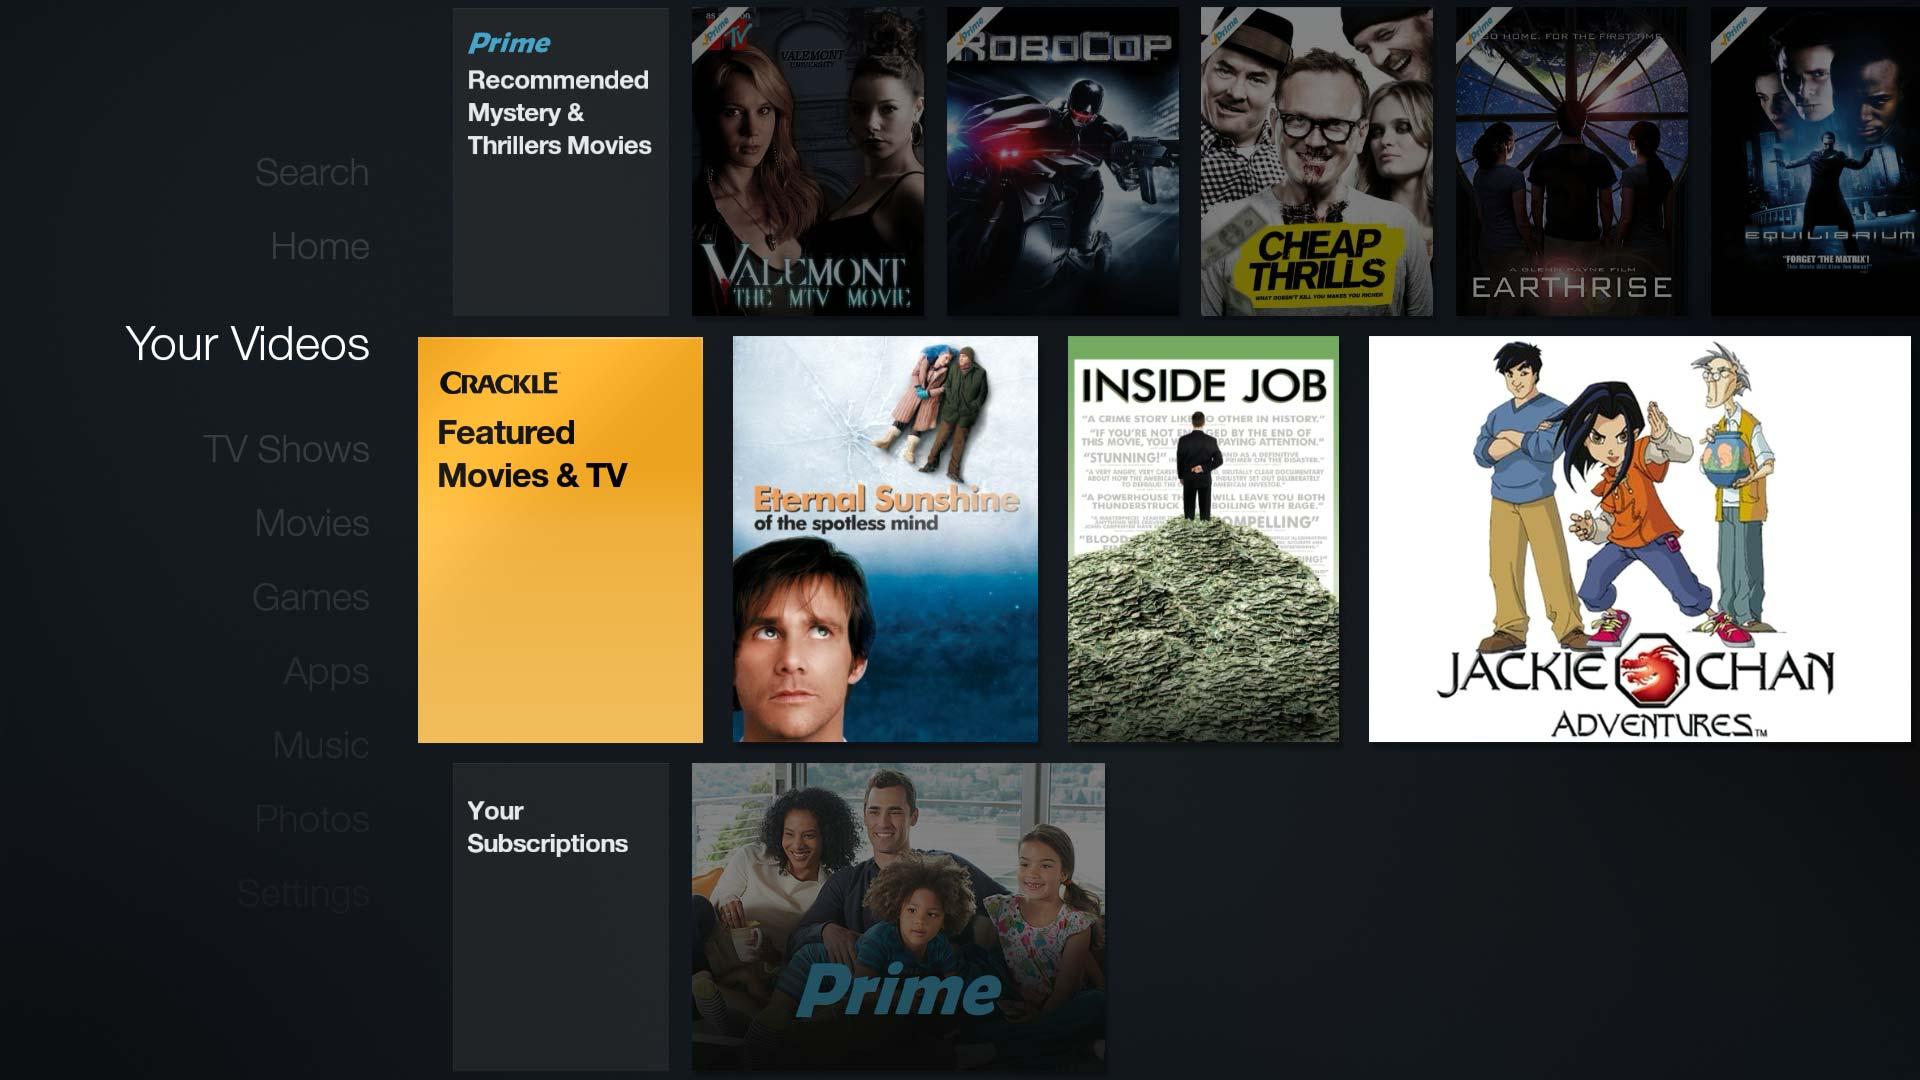 New 'Your Videos' section on Fire TV combines Prime Video